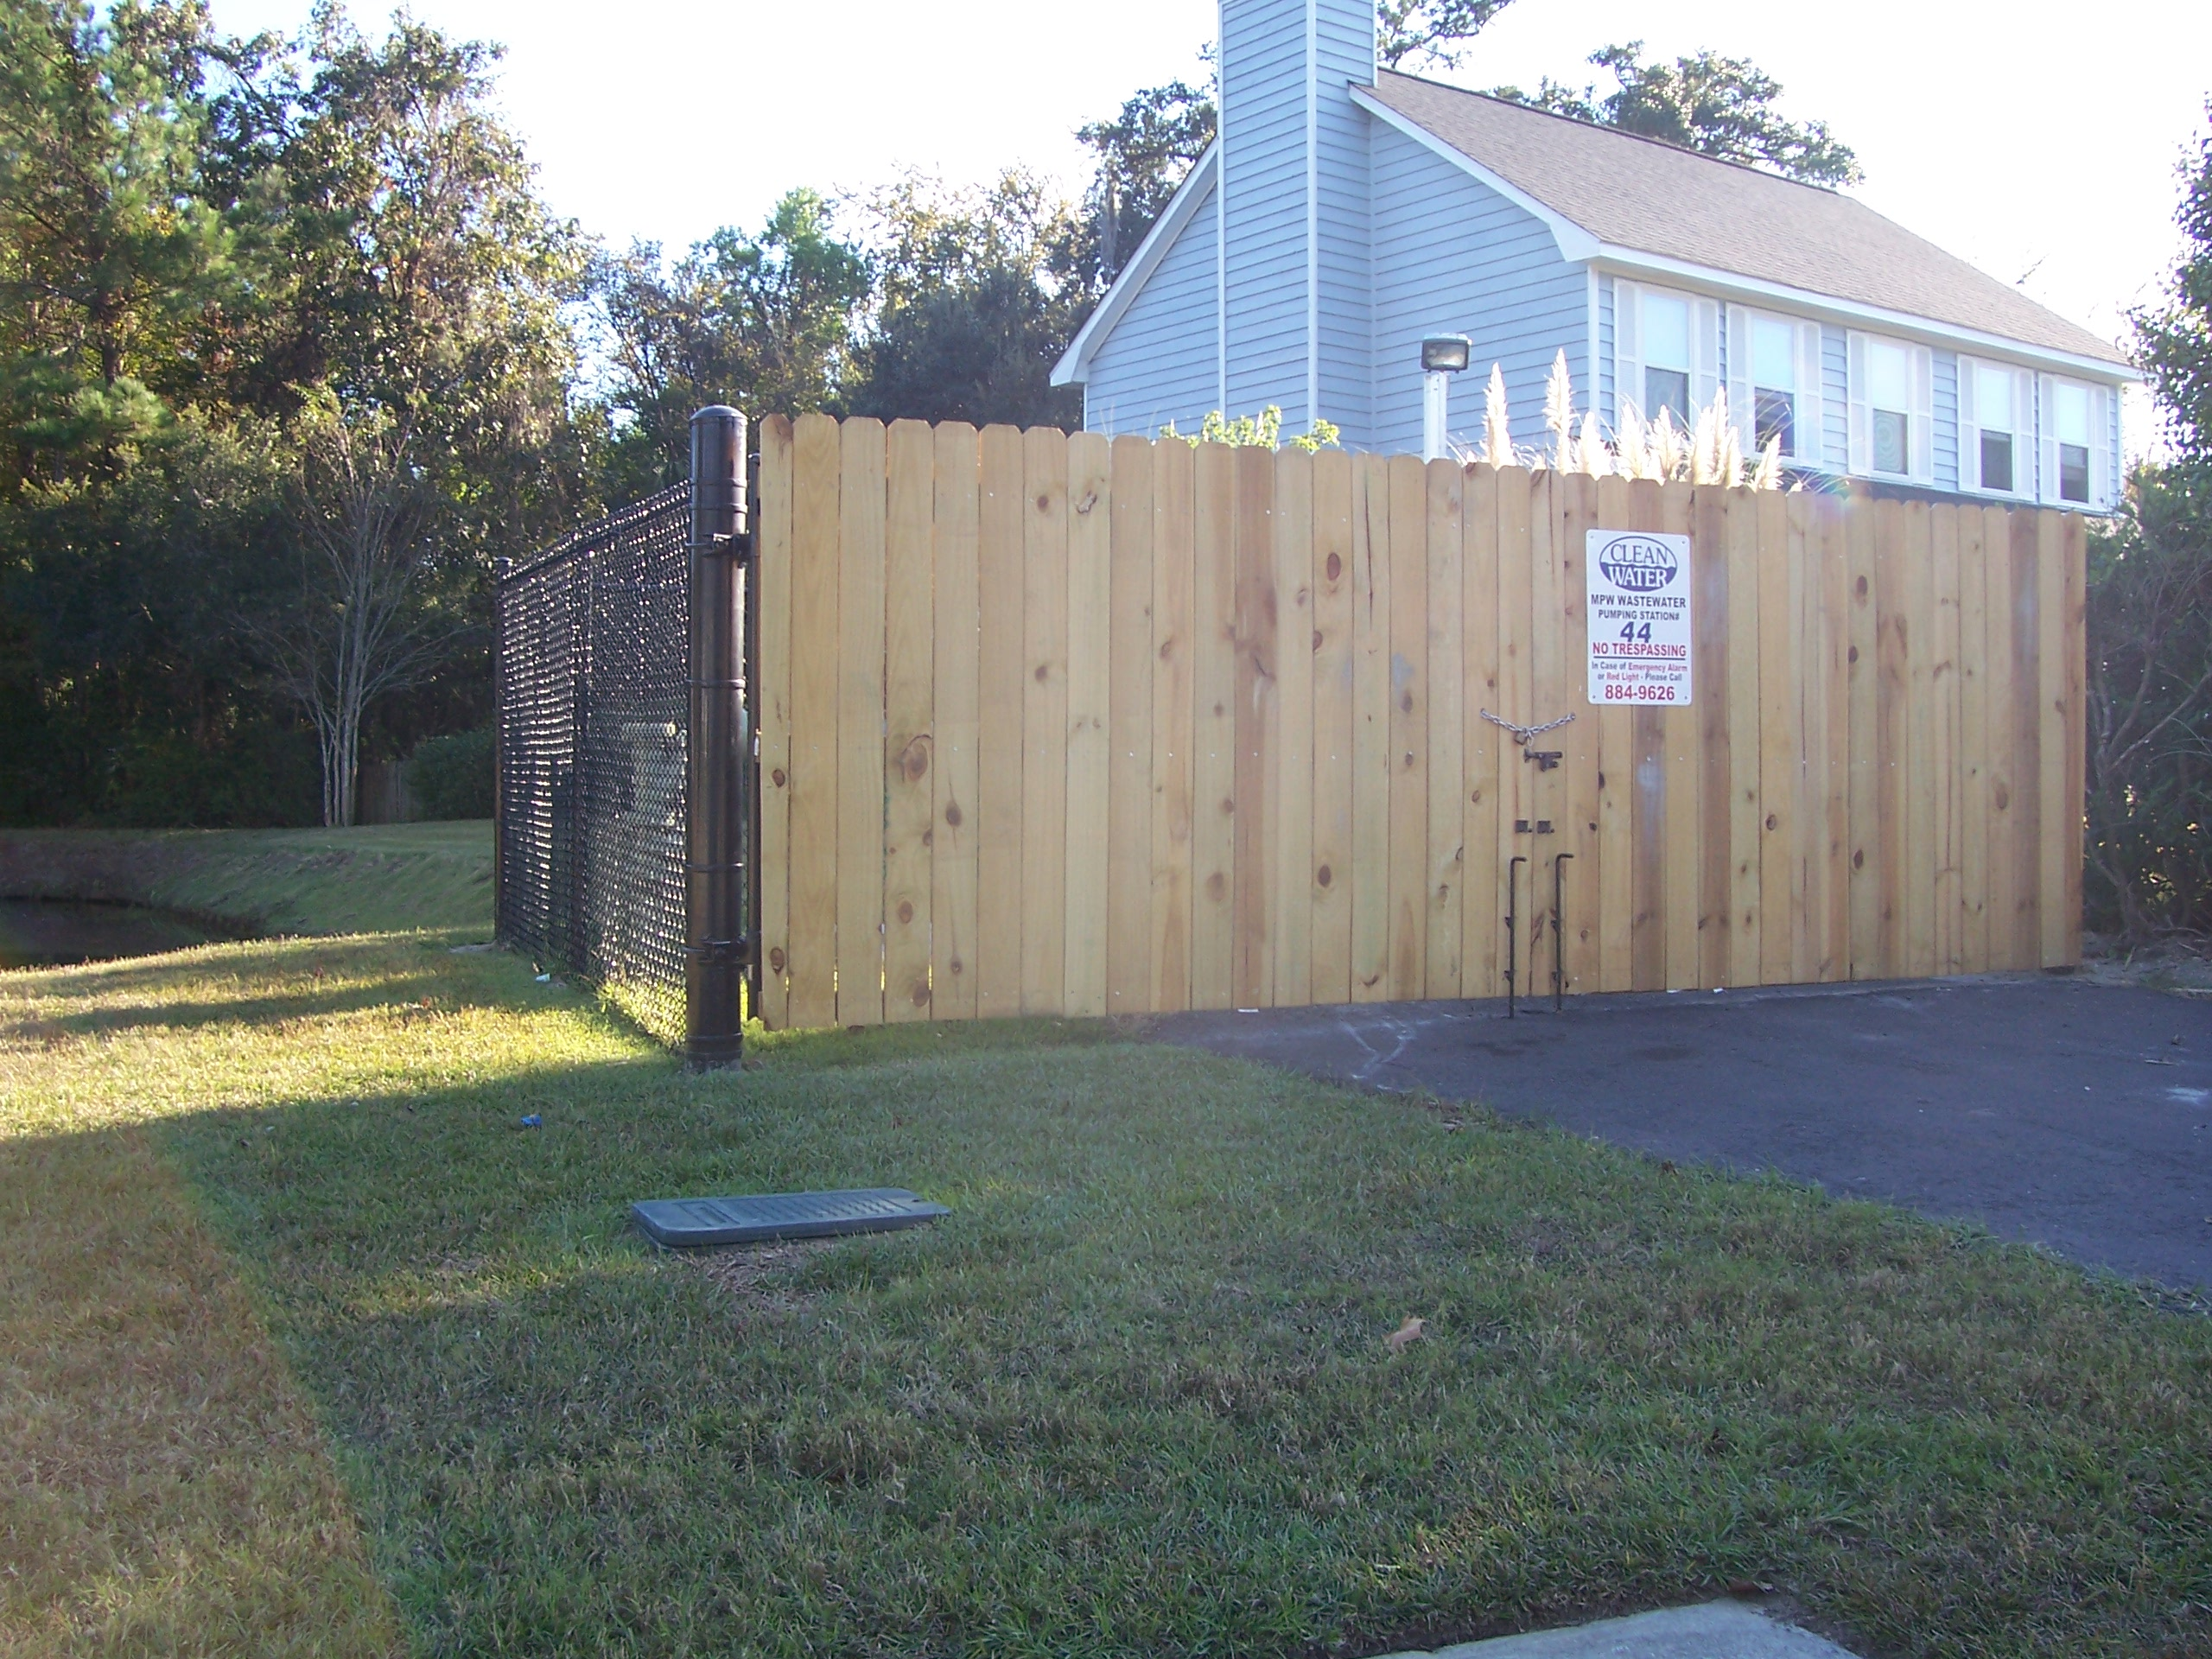 97 Wooden Gate Chain Link Fence Use For Mounting Residential